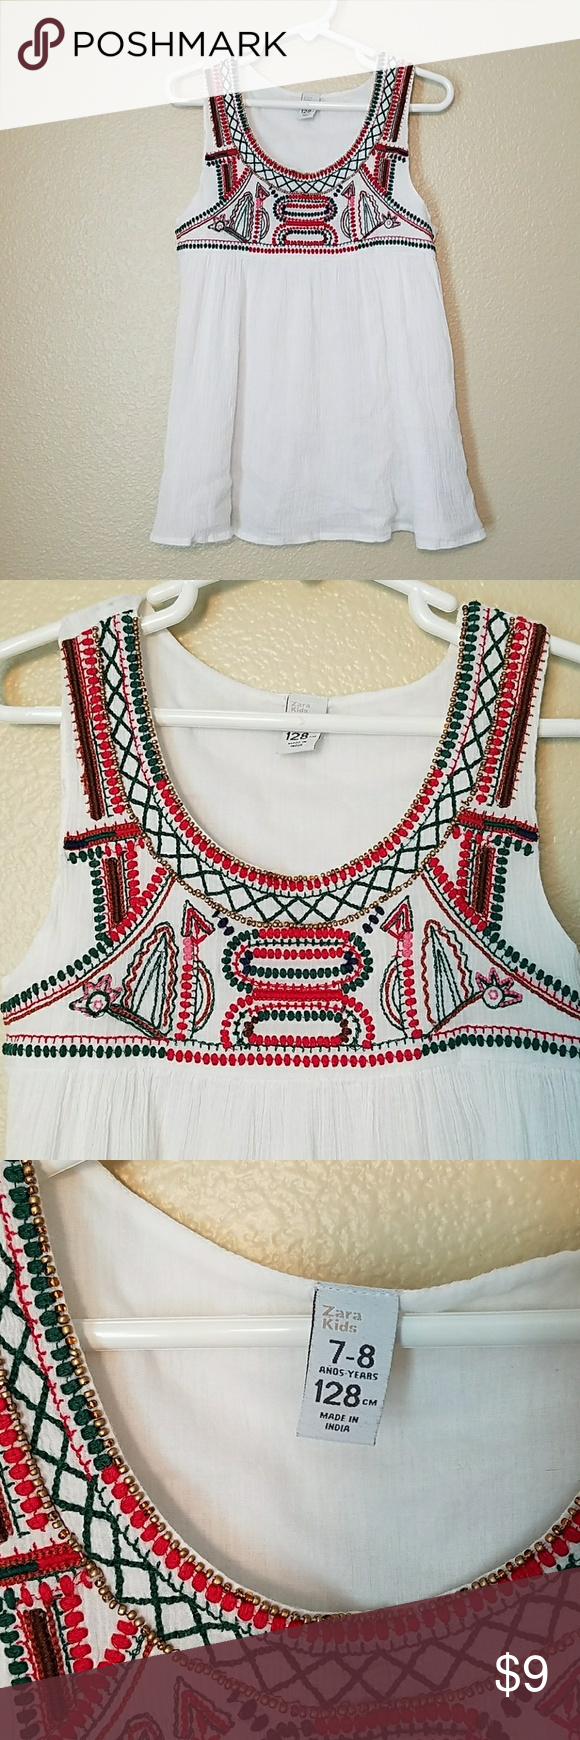 Zara kids embroidered tank top 7 - 8 This 100% cotton gauze tank top has beautif... ,  #beautif #Cotton #Embroidered #gauze #KIDS #Tank #top #ZARA #zarakidsred